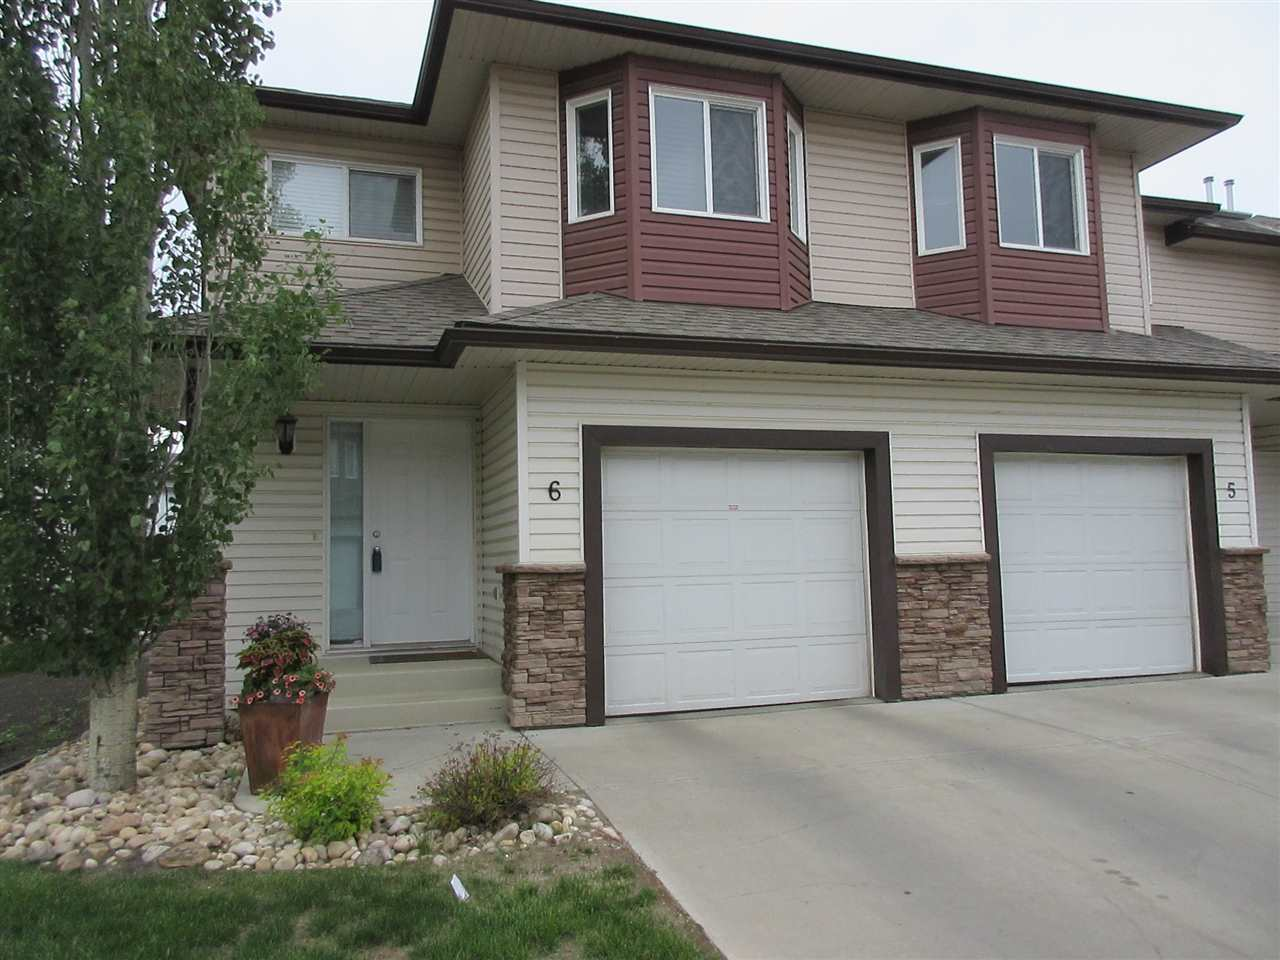 MLS® listing #E4159847 for sale located at 6 171 BRINTNELL Boulevard